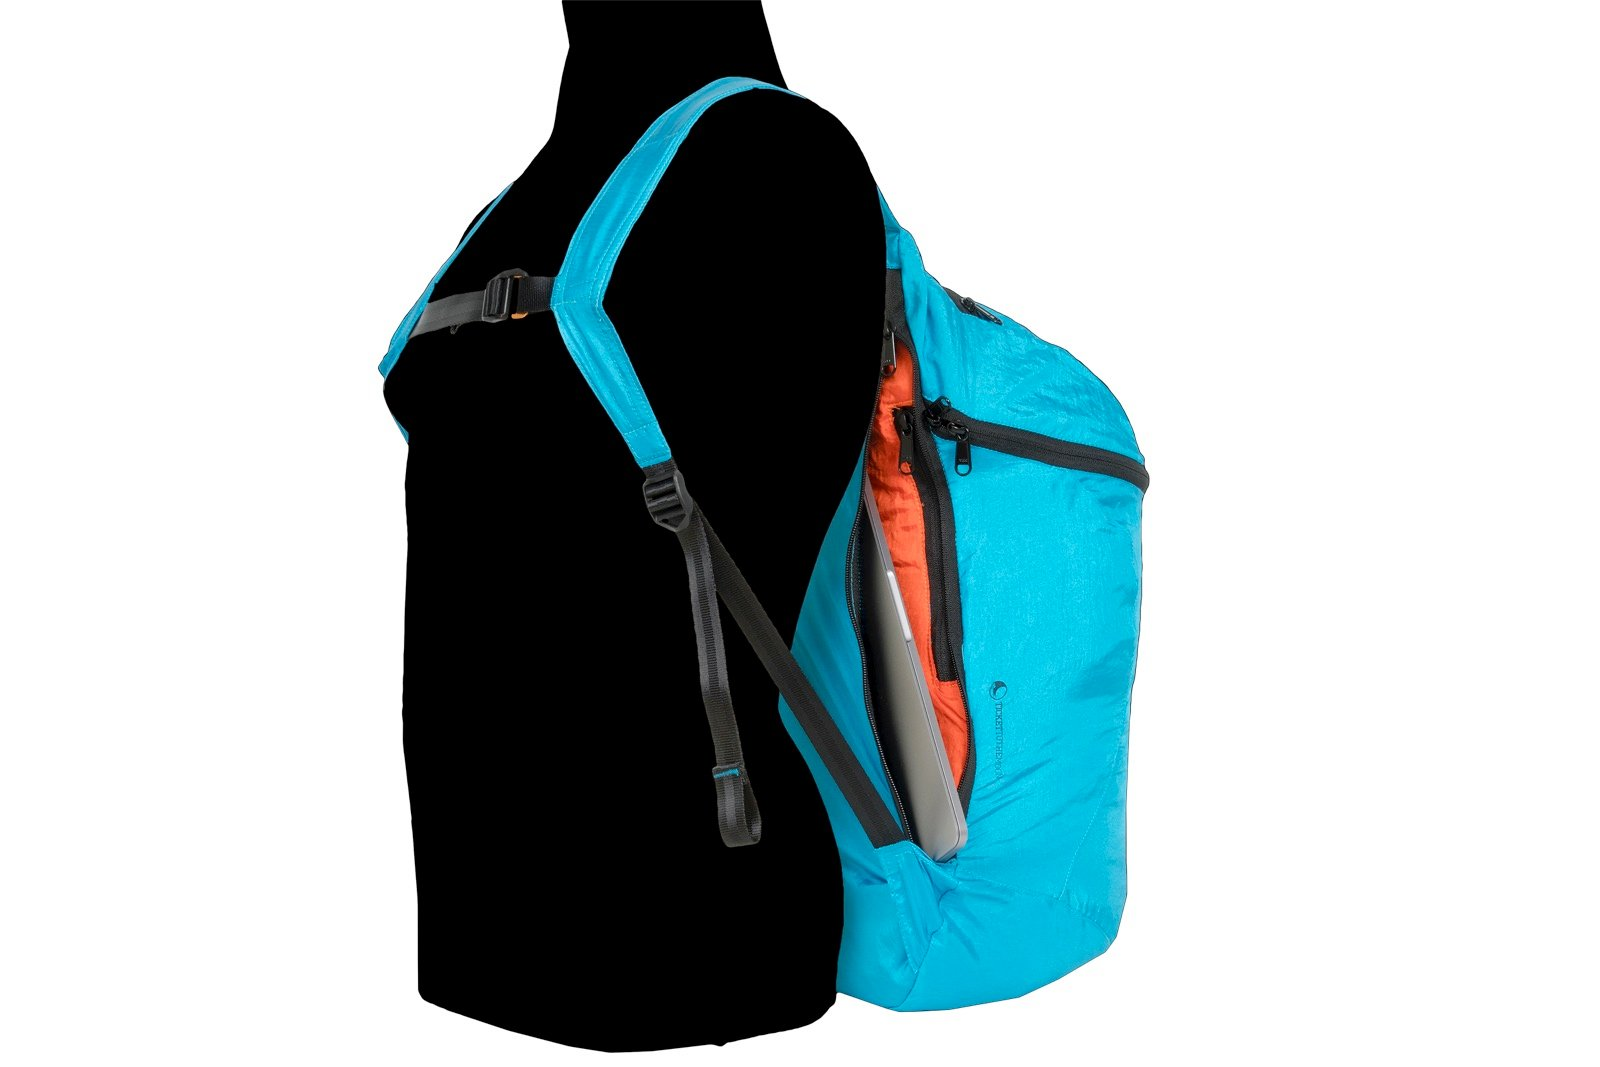 backpack plus with a varian color and comfort for traveling